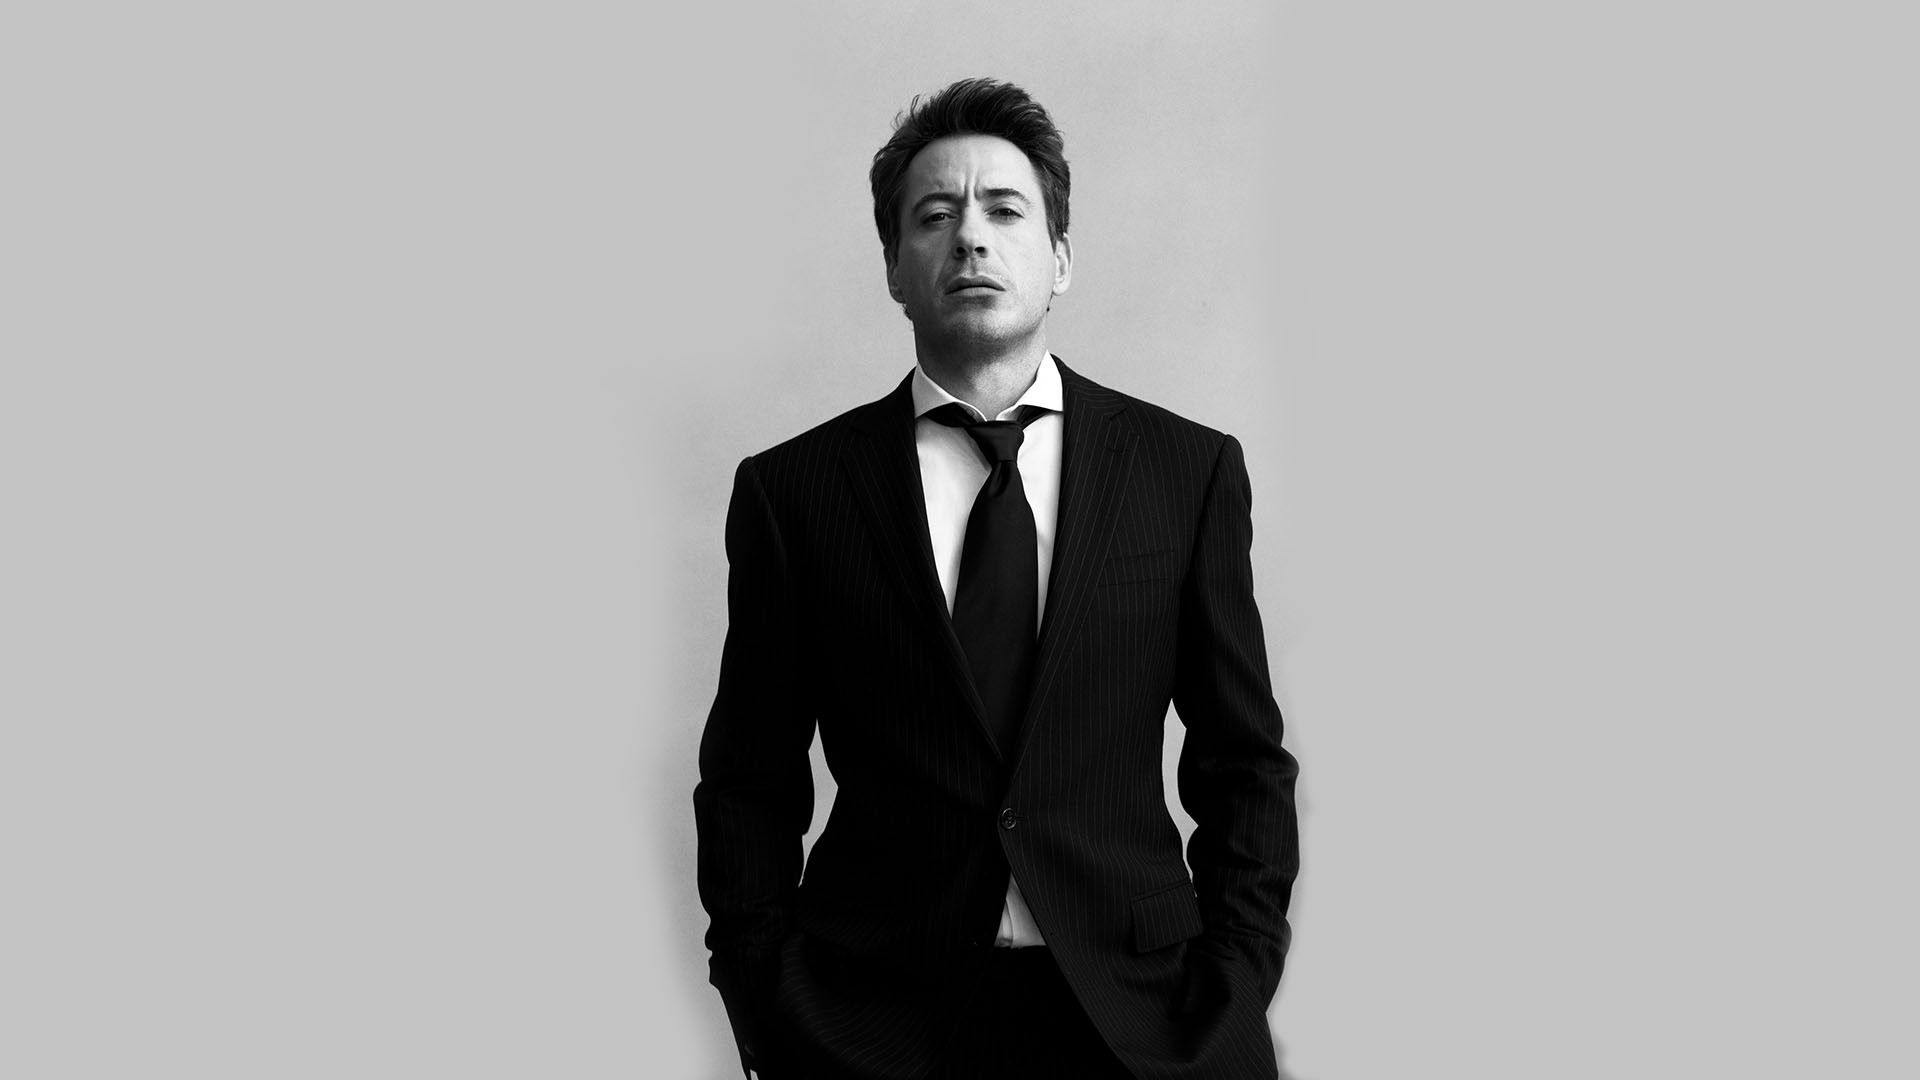 780208-actors-grayscale-robert-downey-jr-simple-background-suit